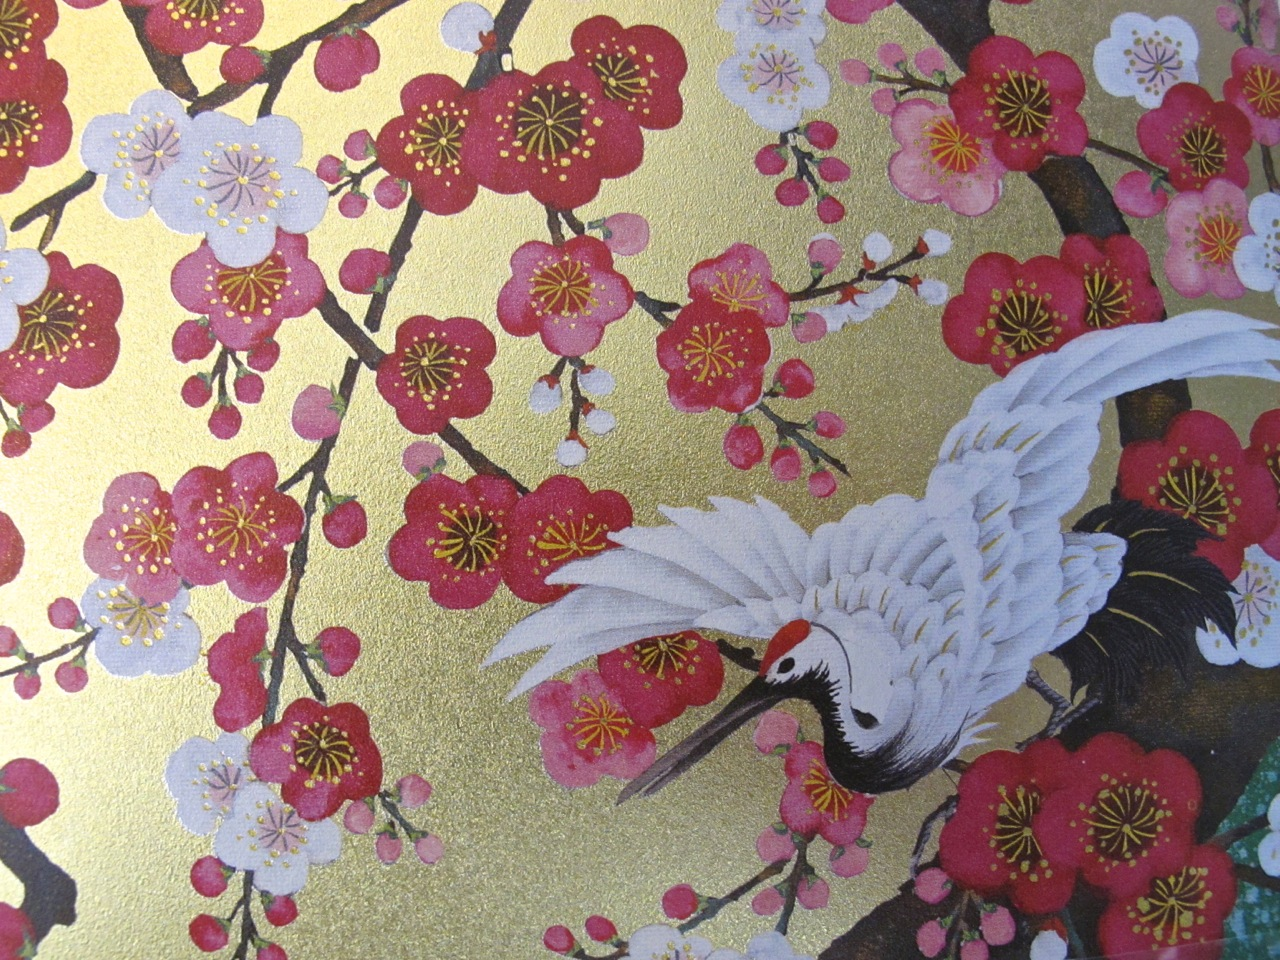 Plum blossoms on greeting card.